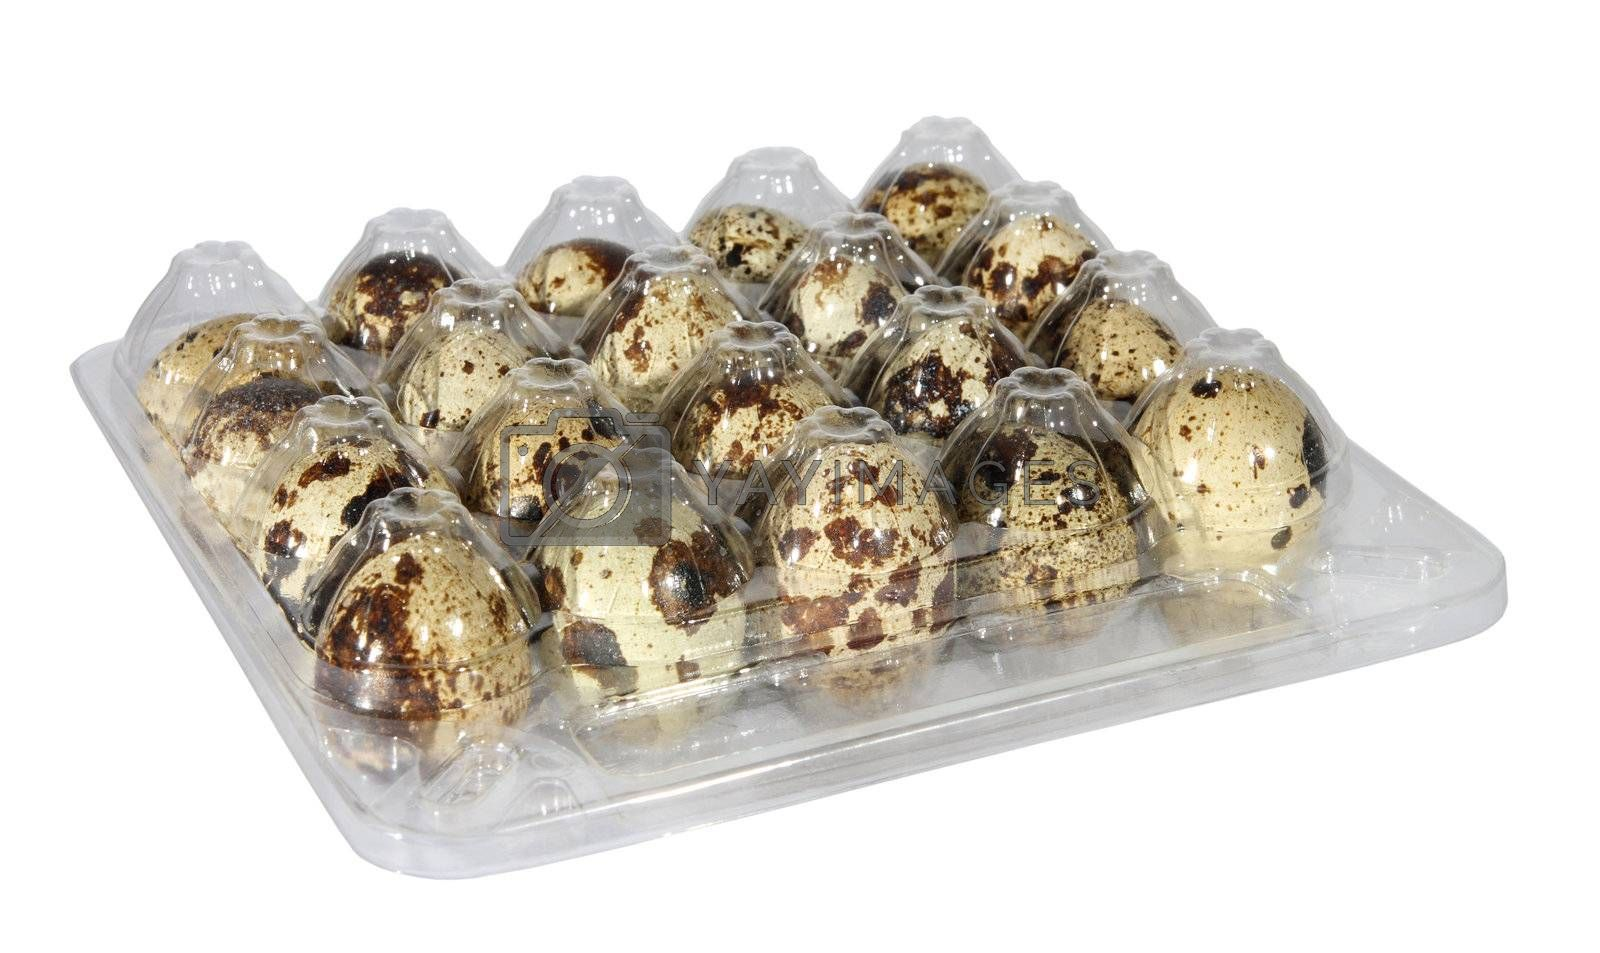 quail egg in packing by aptyp_kok